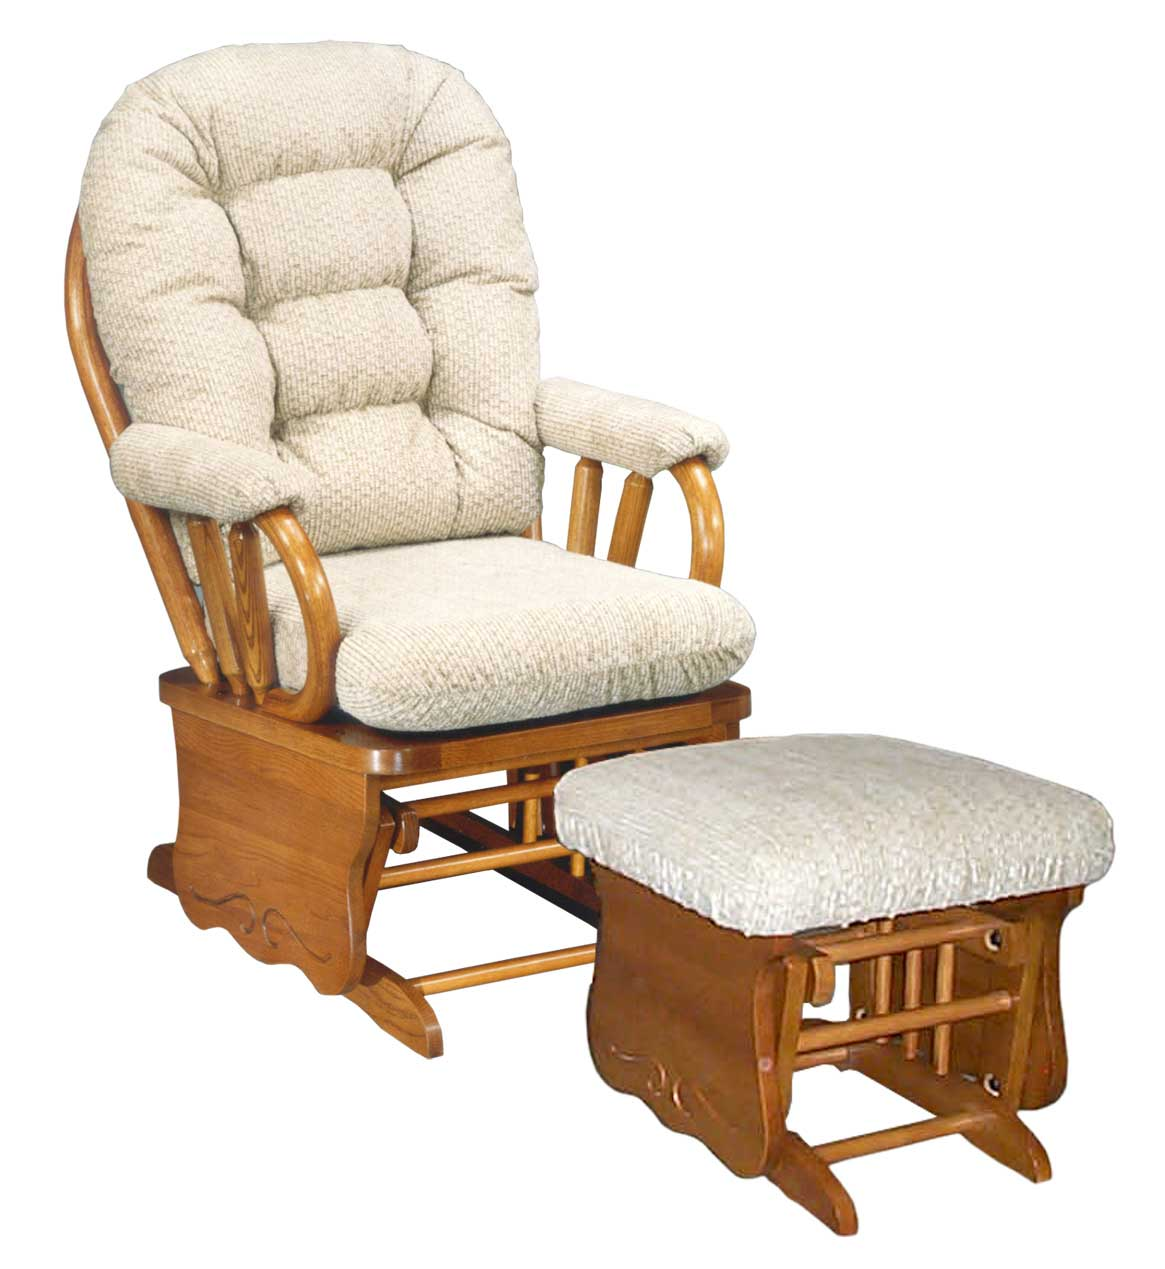 rocking chair ottoman cushions skyline modern accent gliders and chairs jasen 39s fine furniture since 1951